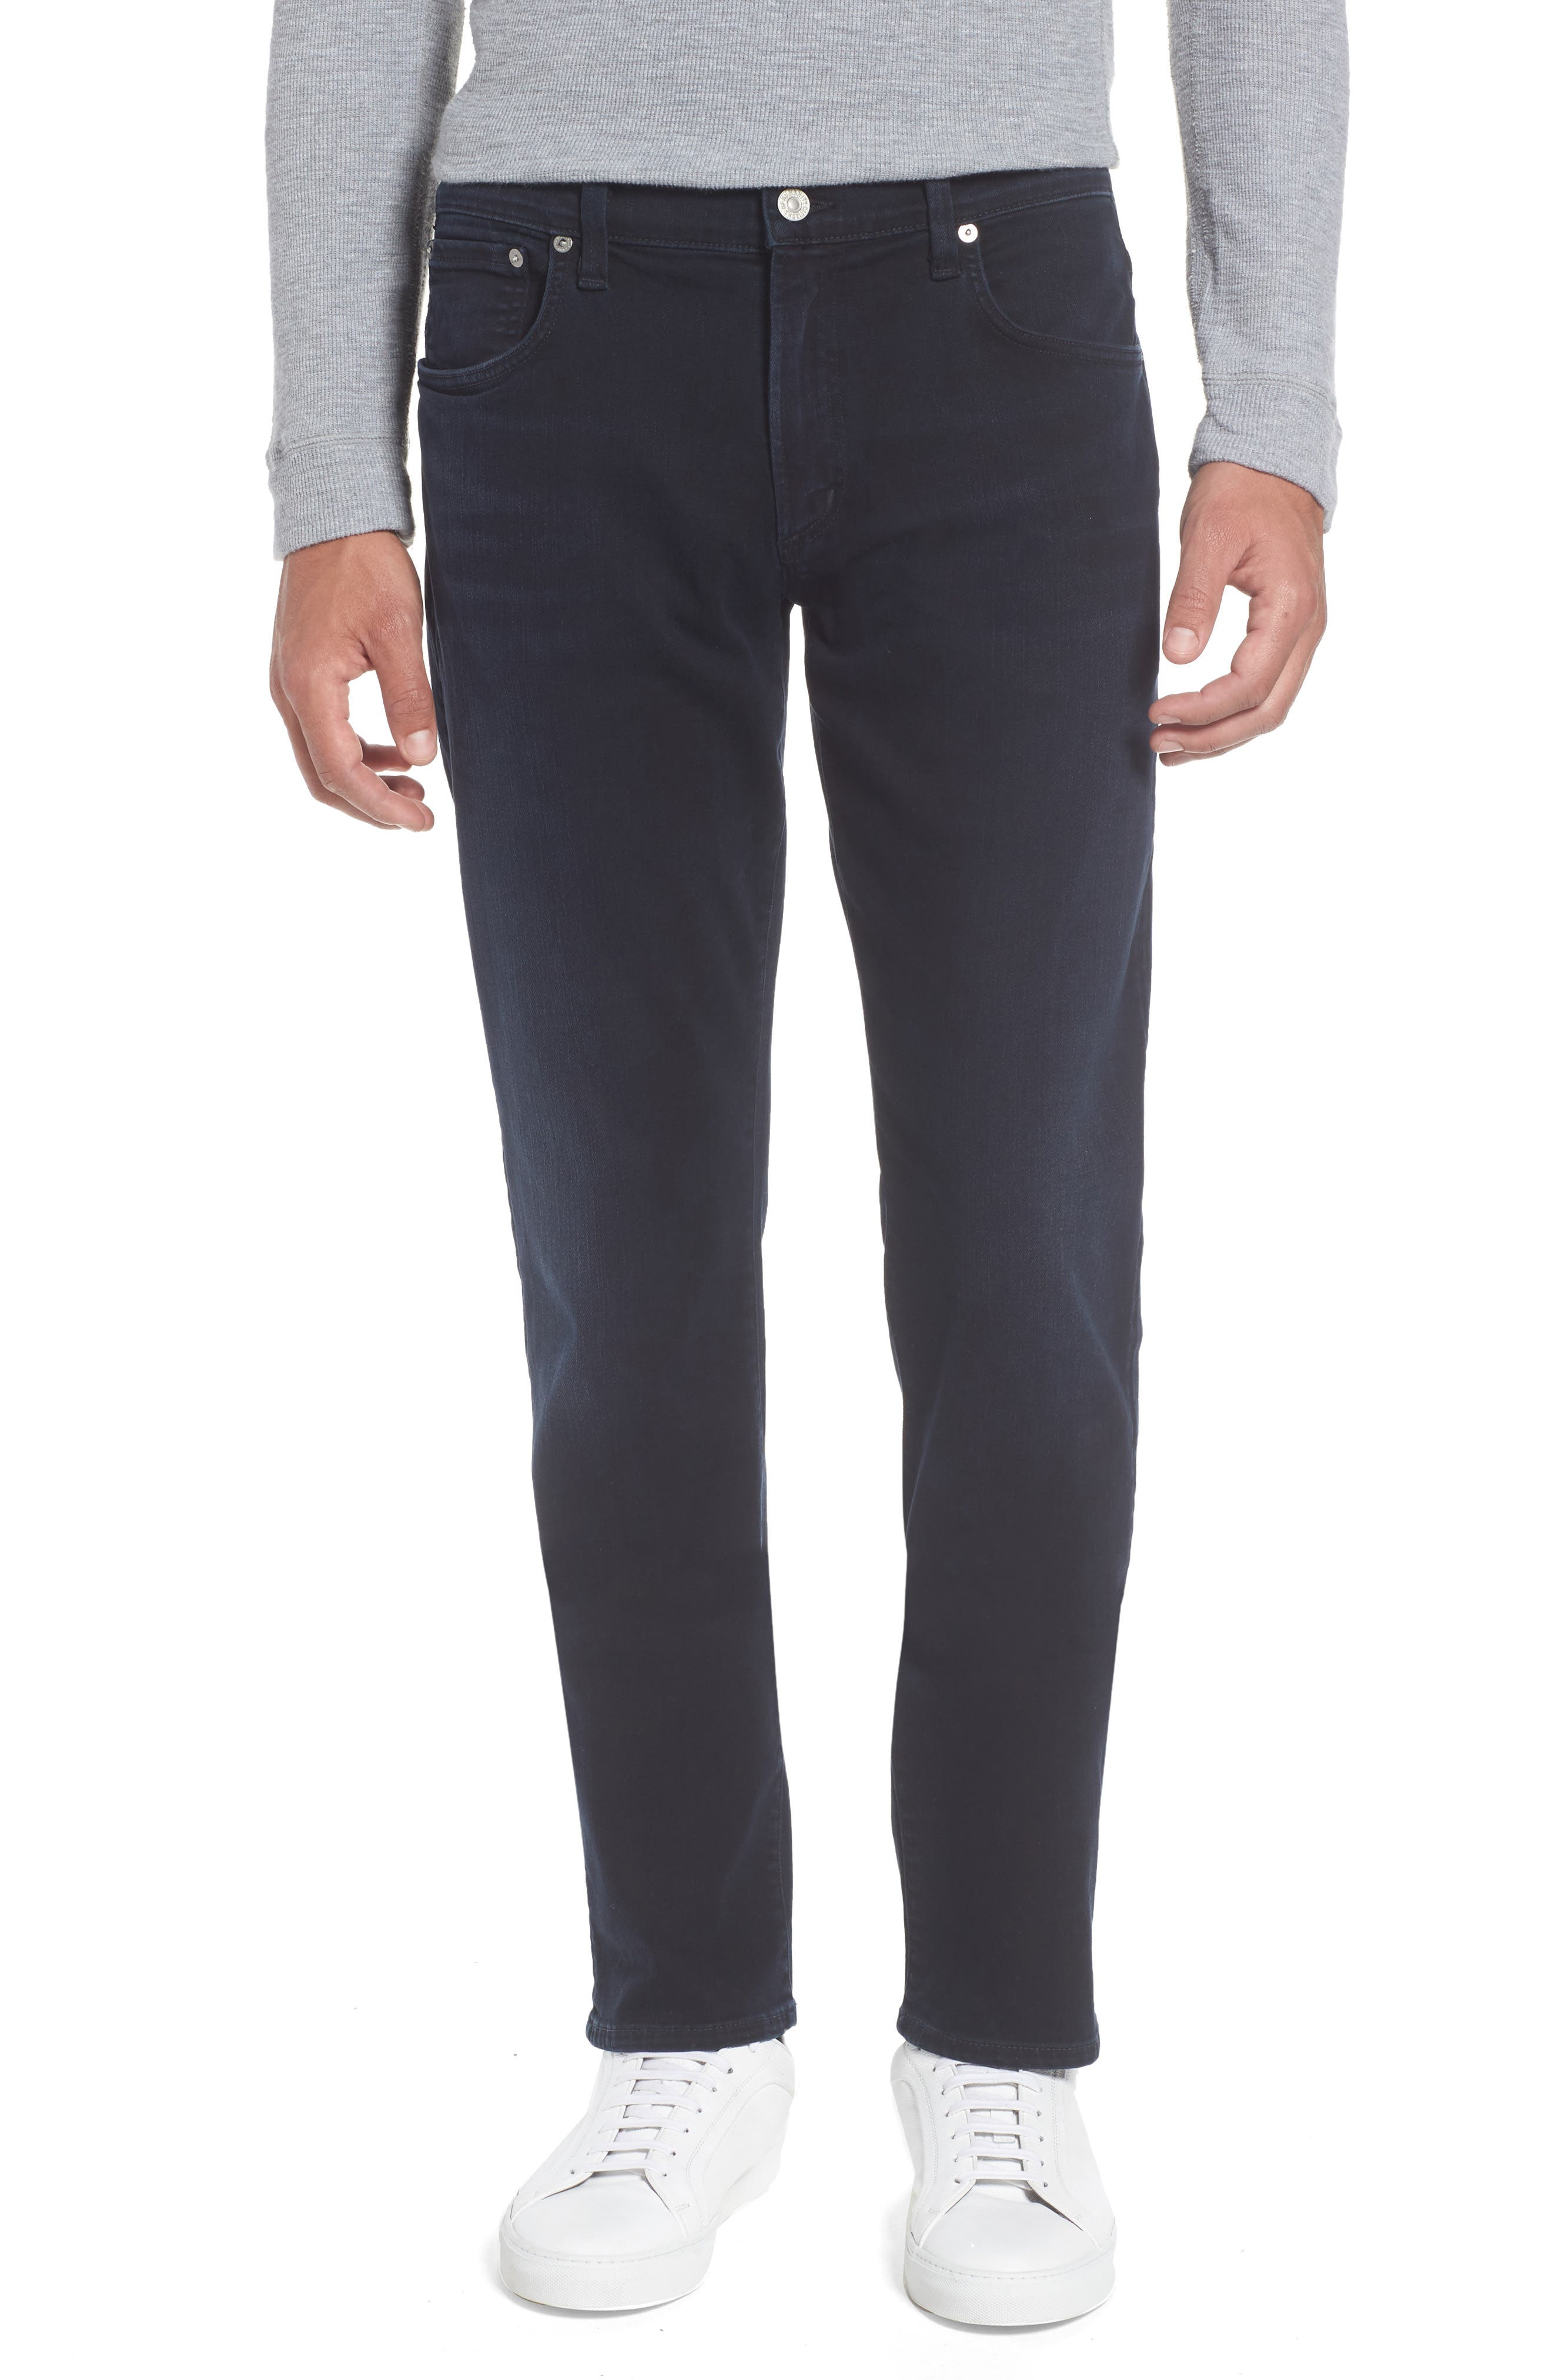 PERFORM - Gage Slim Straight Fit Jeans,                         Main,                         color, Ink